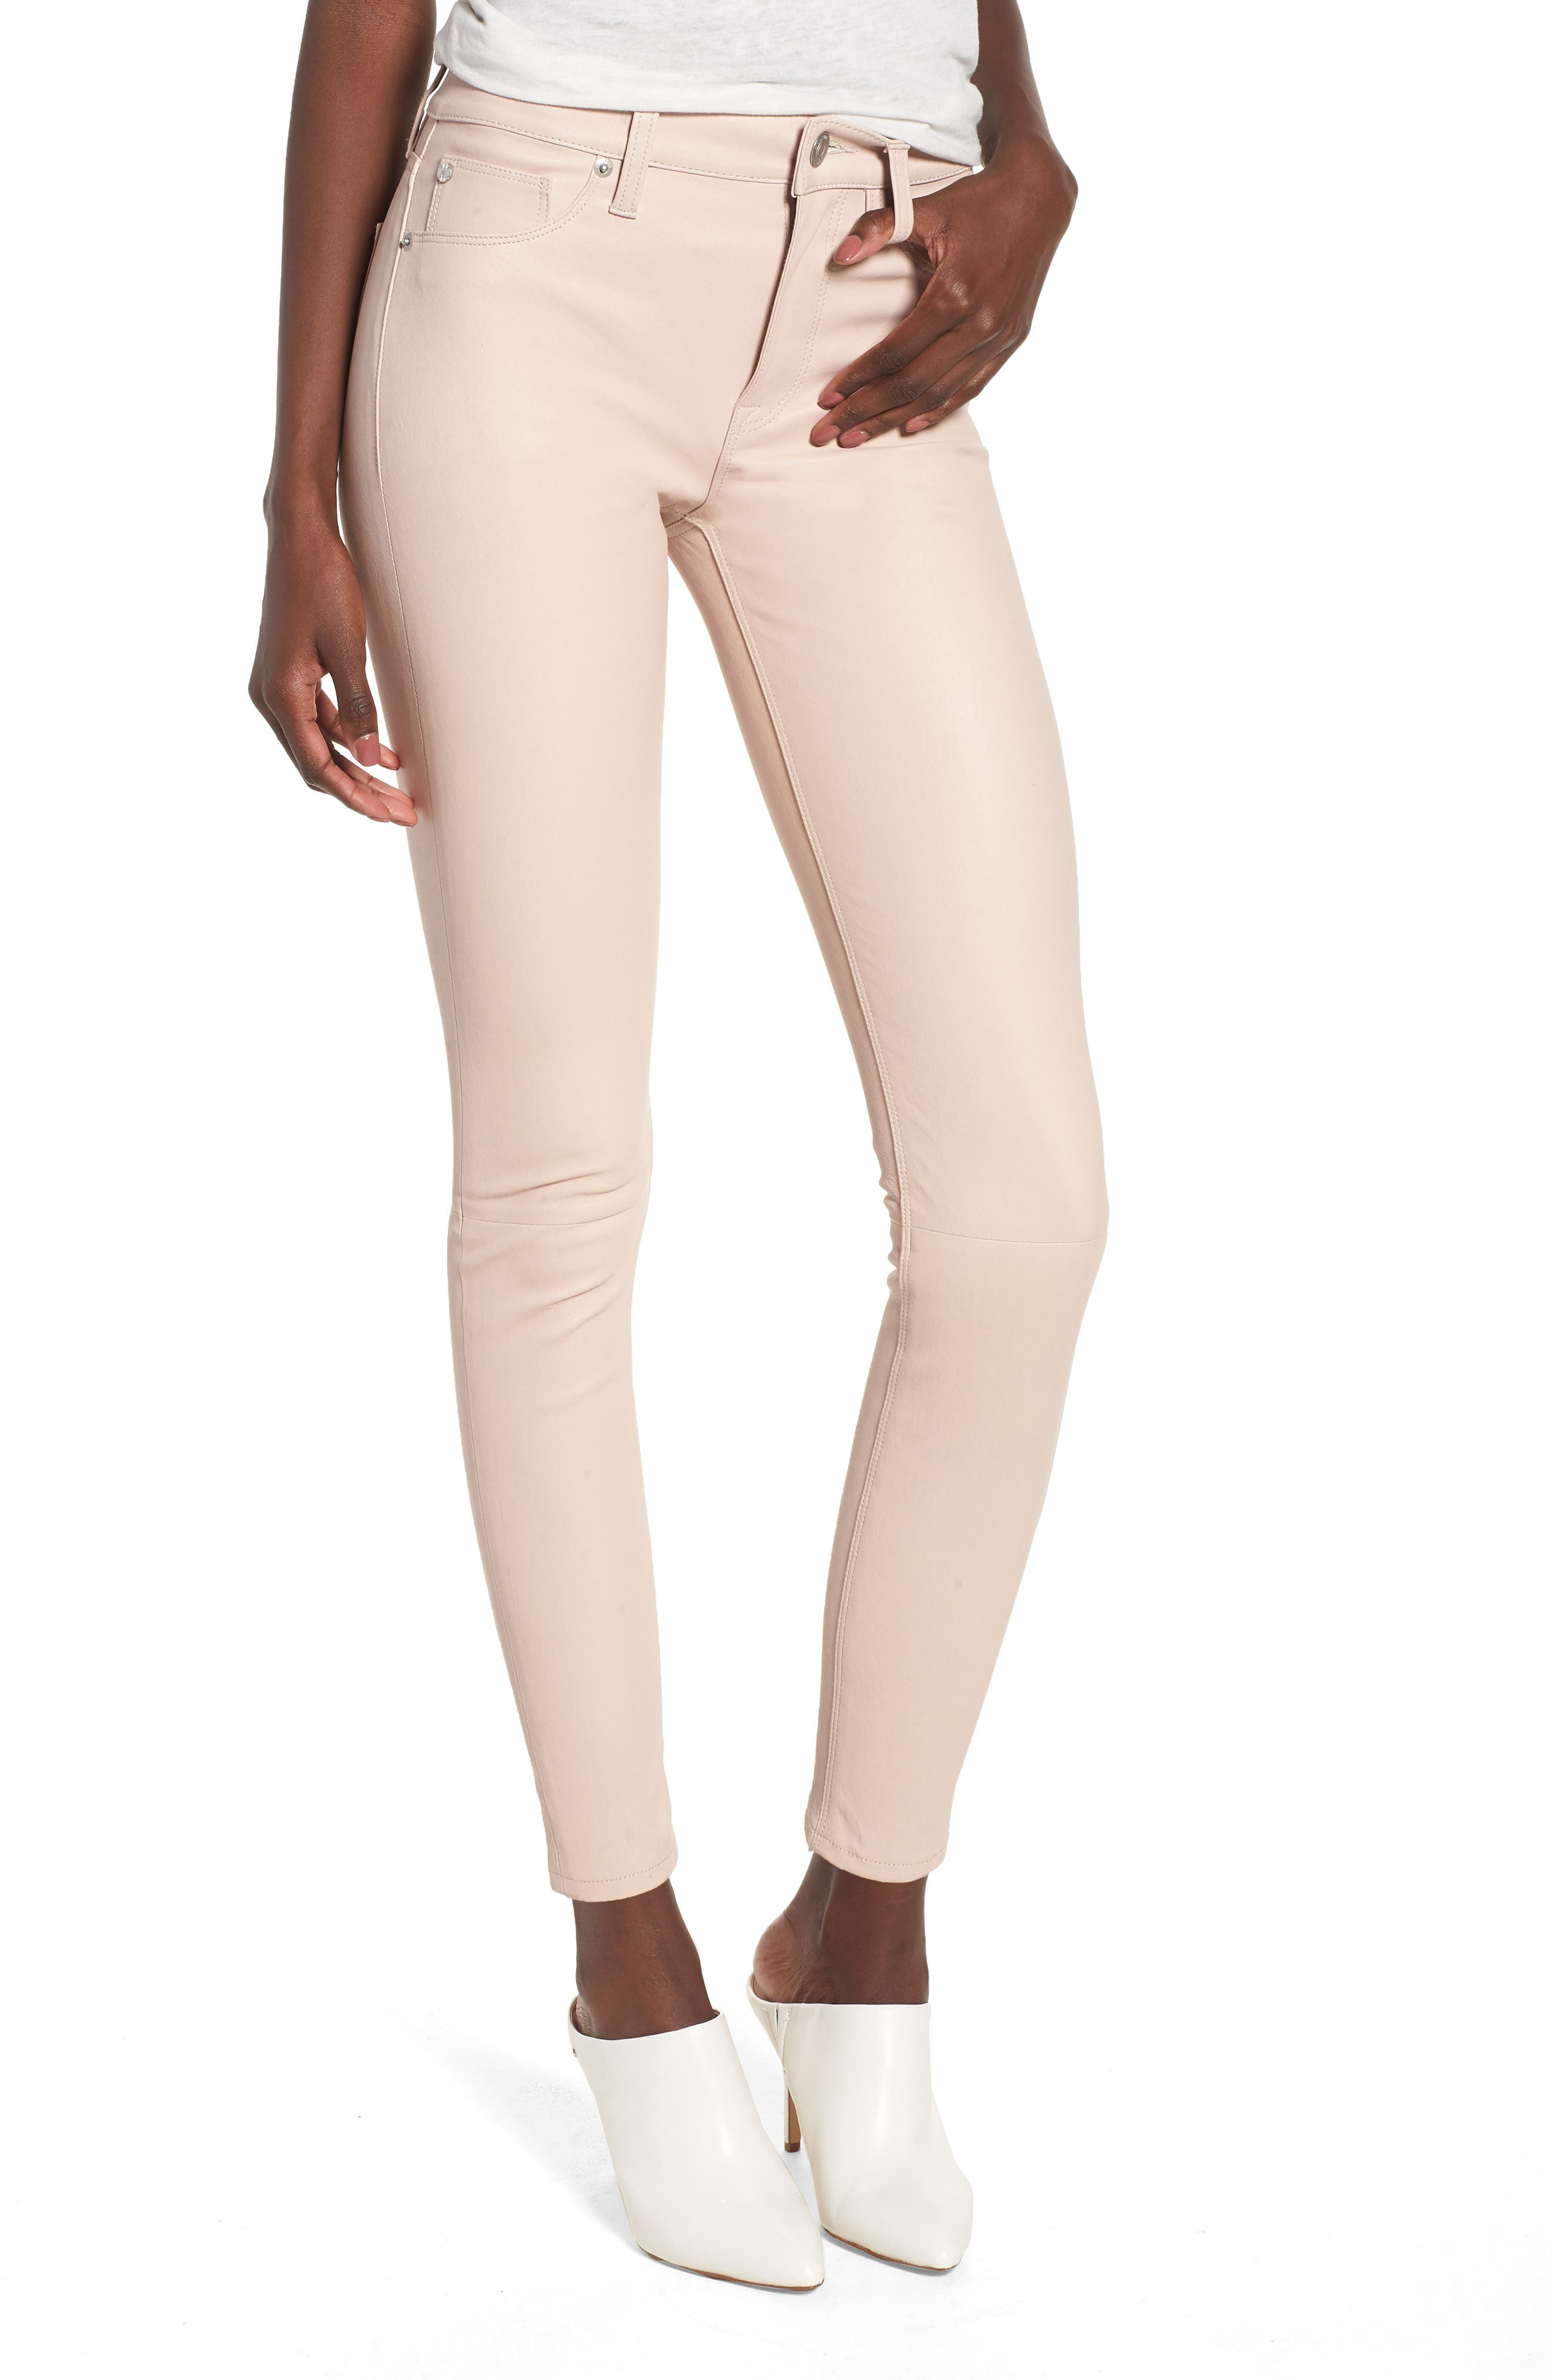 Barbara High Waist Ankle Skinny Leather Jeans,                         Main,                         color, BLUSHING